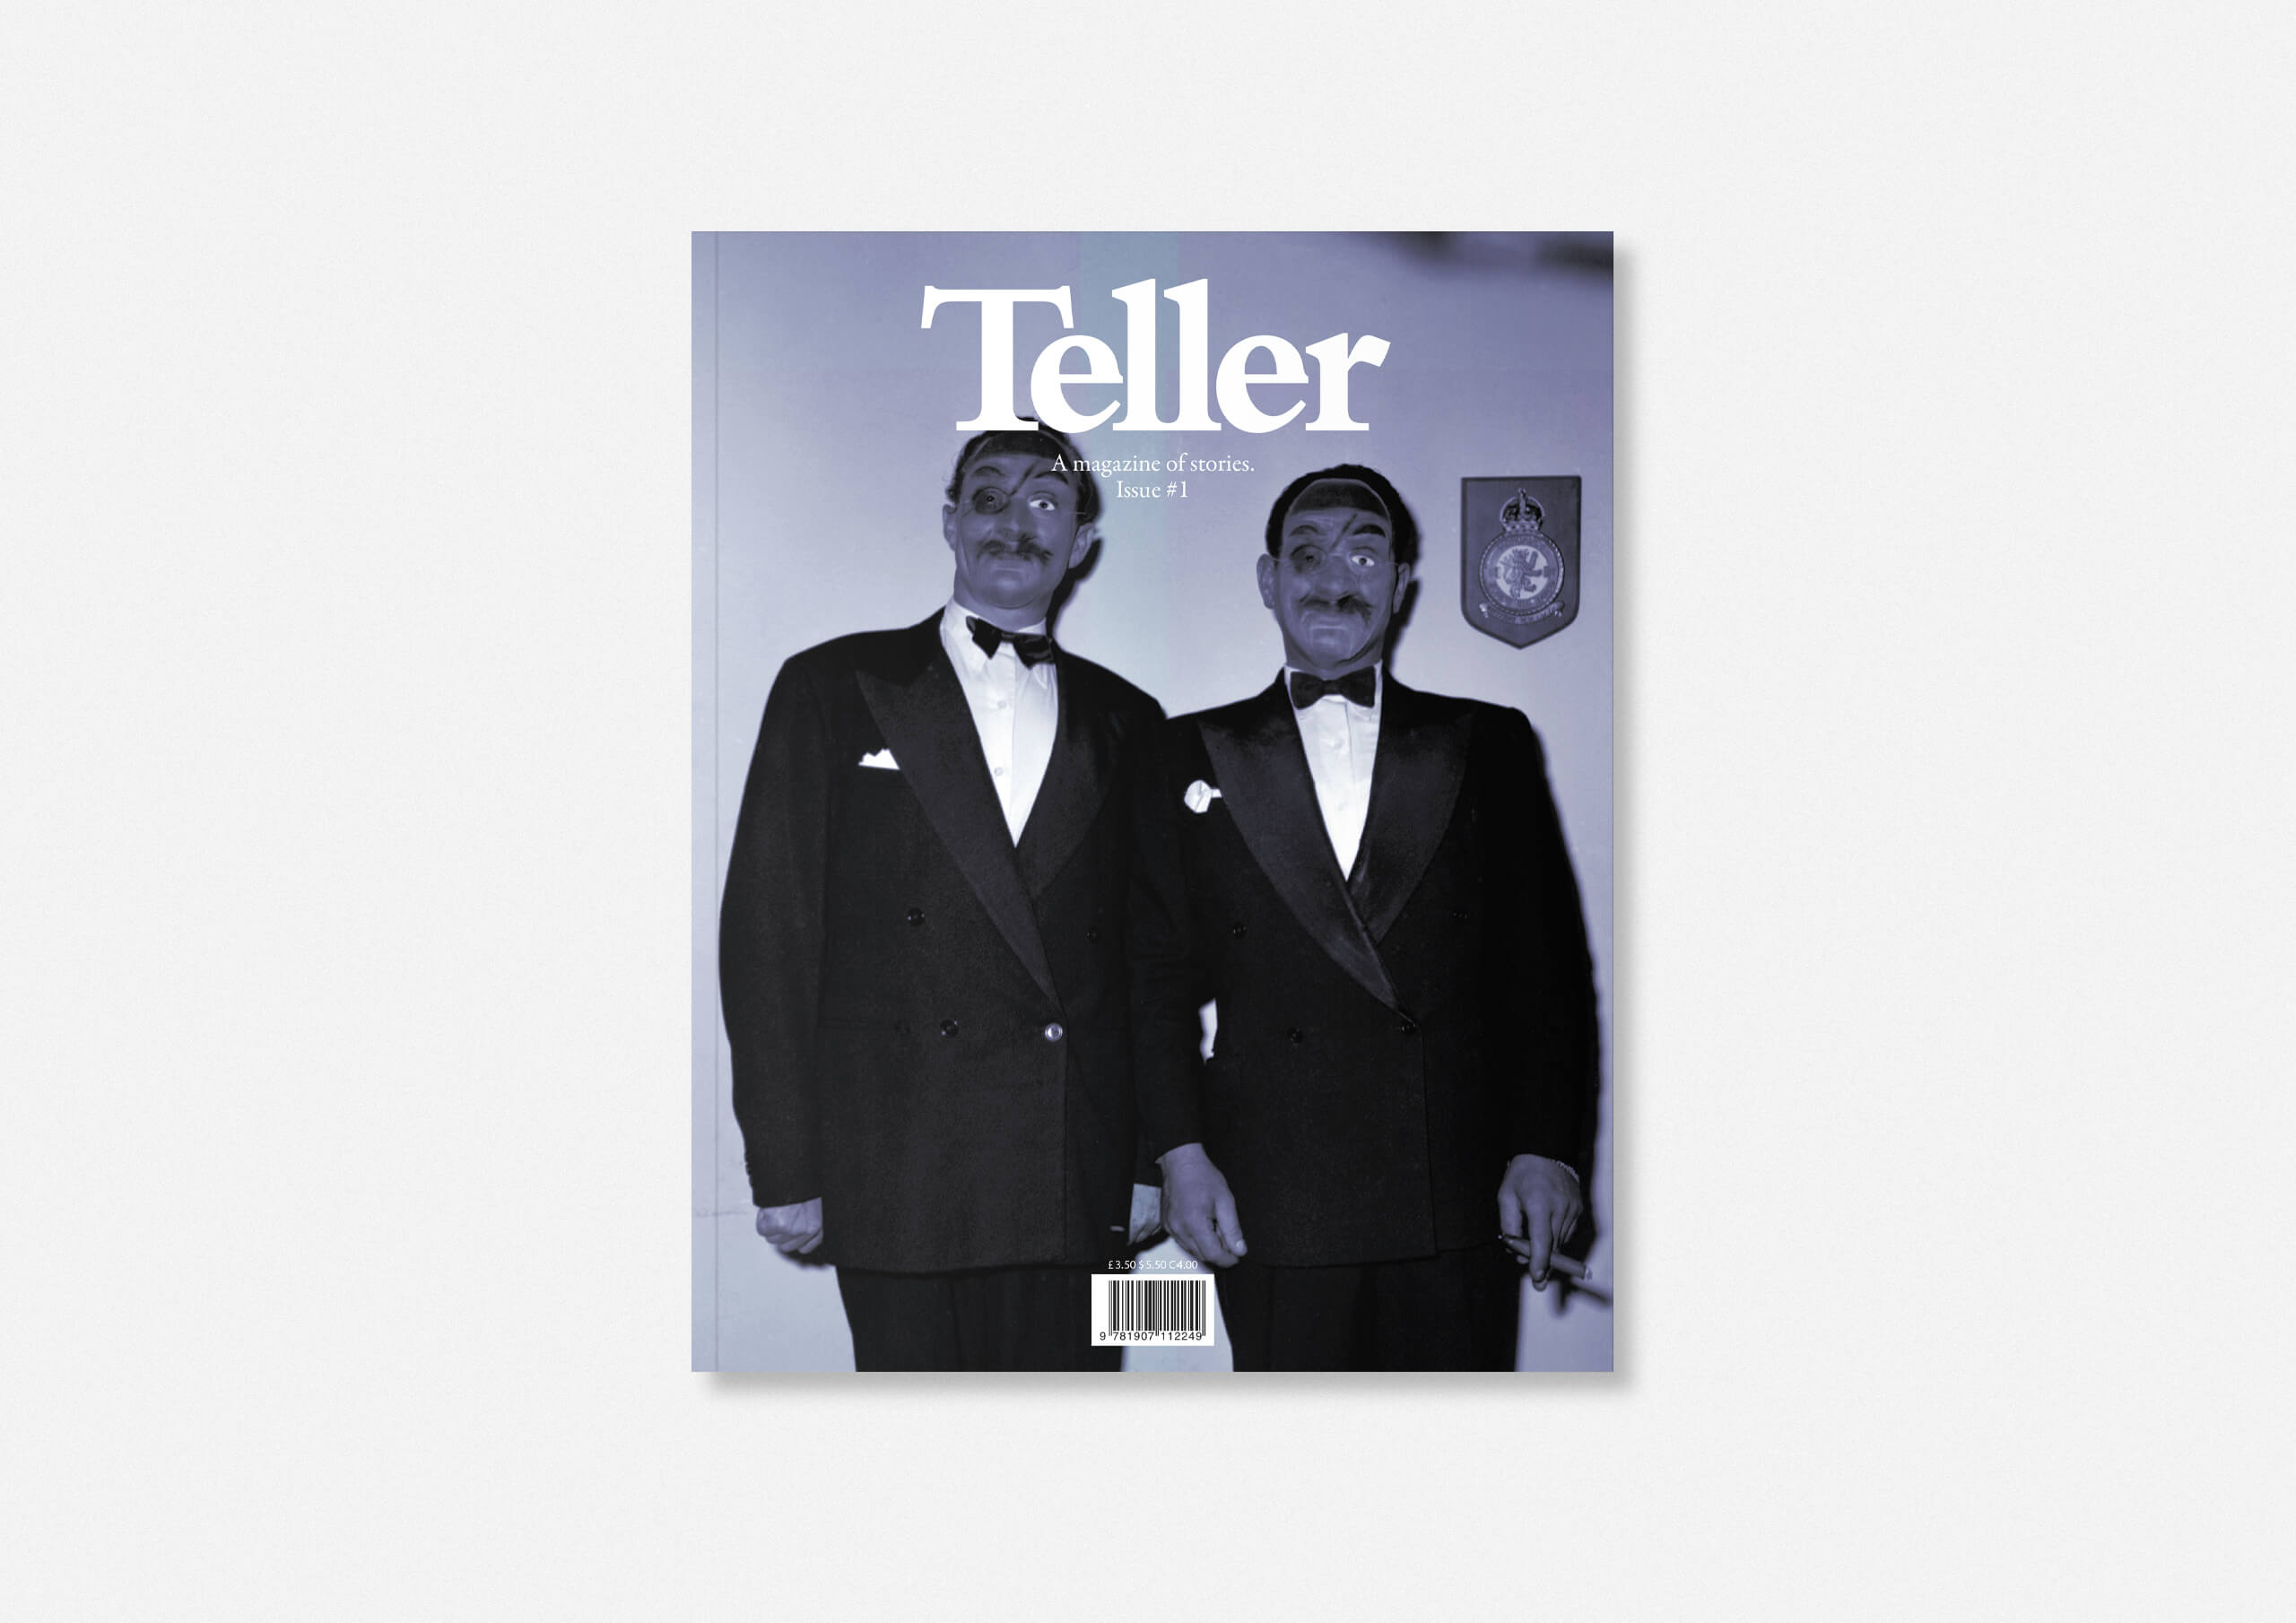 http://neuegestaltung.de/media/pages/clients/teller-magazine-issue-1/fed97293a4-1597415428/teller_issue_01_vorderseite_ng.jpg